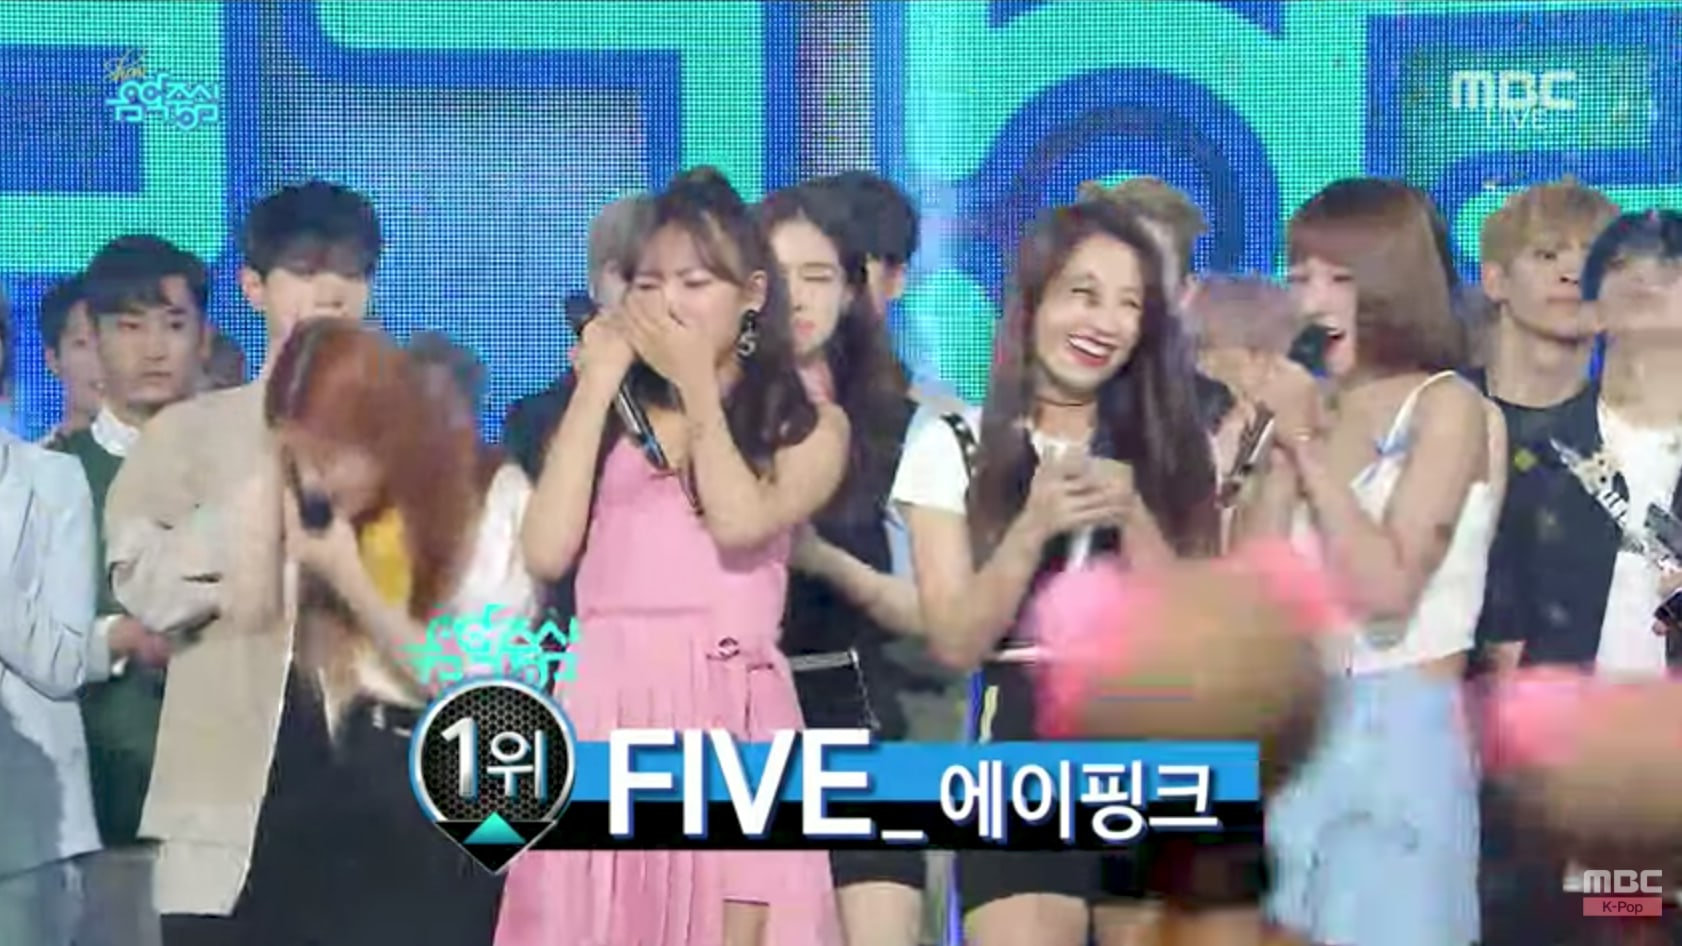 Watch: Apink Takes 6th Win For Five On Music Core; Performances By BLACKPINK, UP10TION, And More